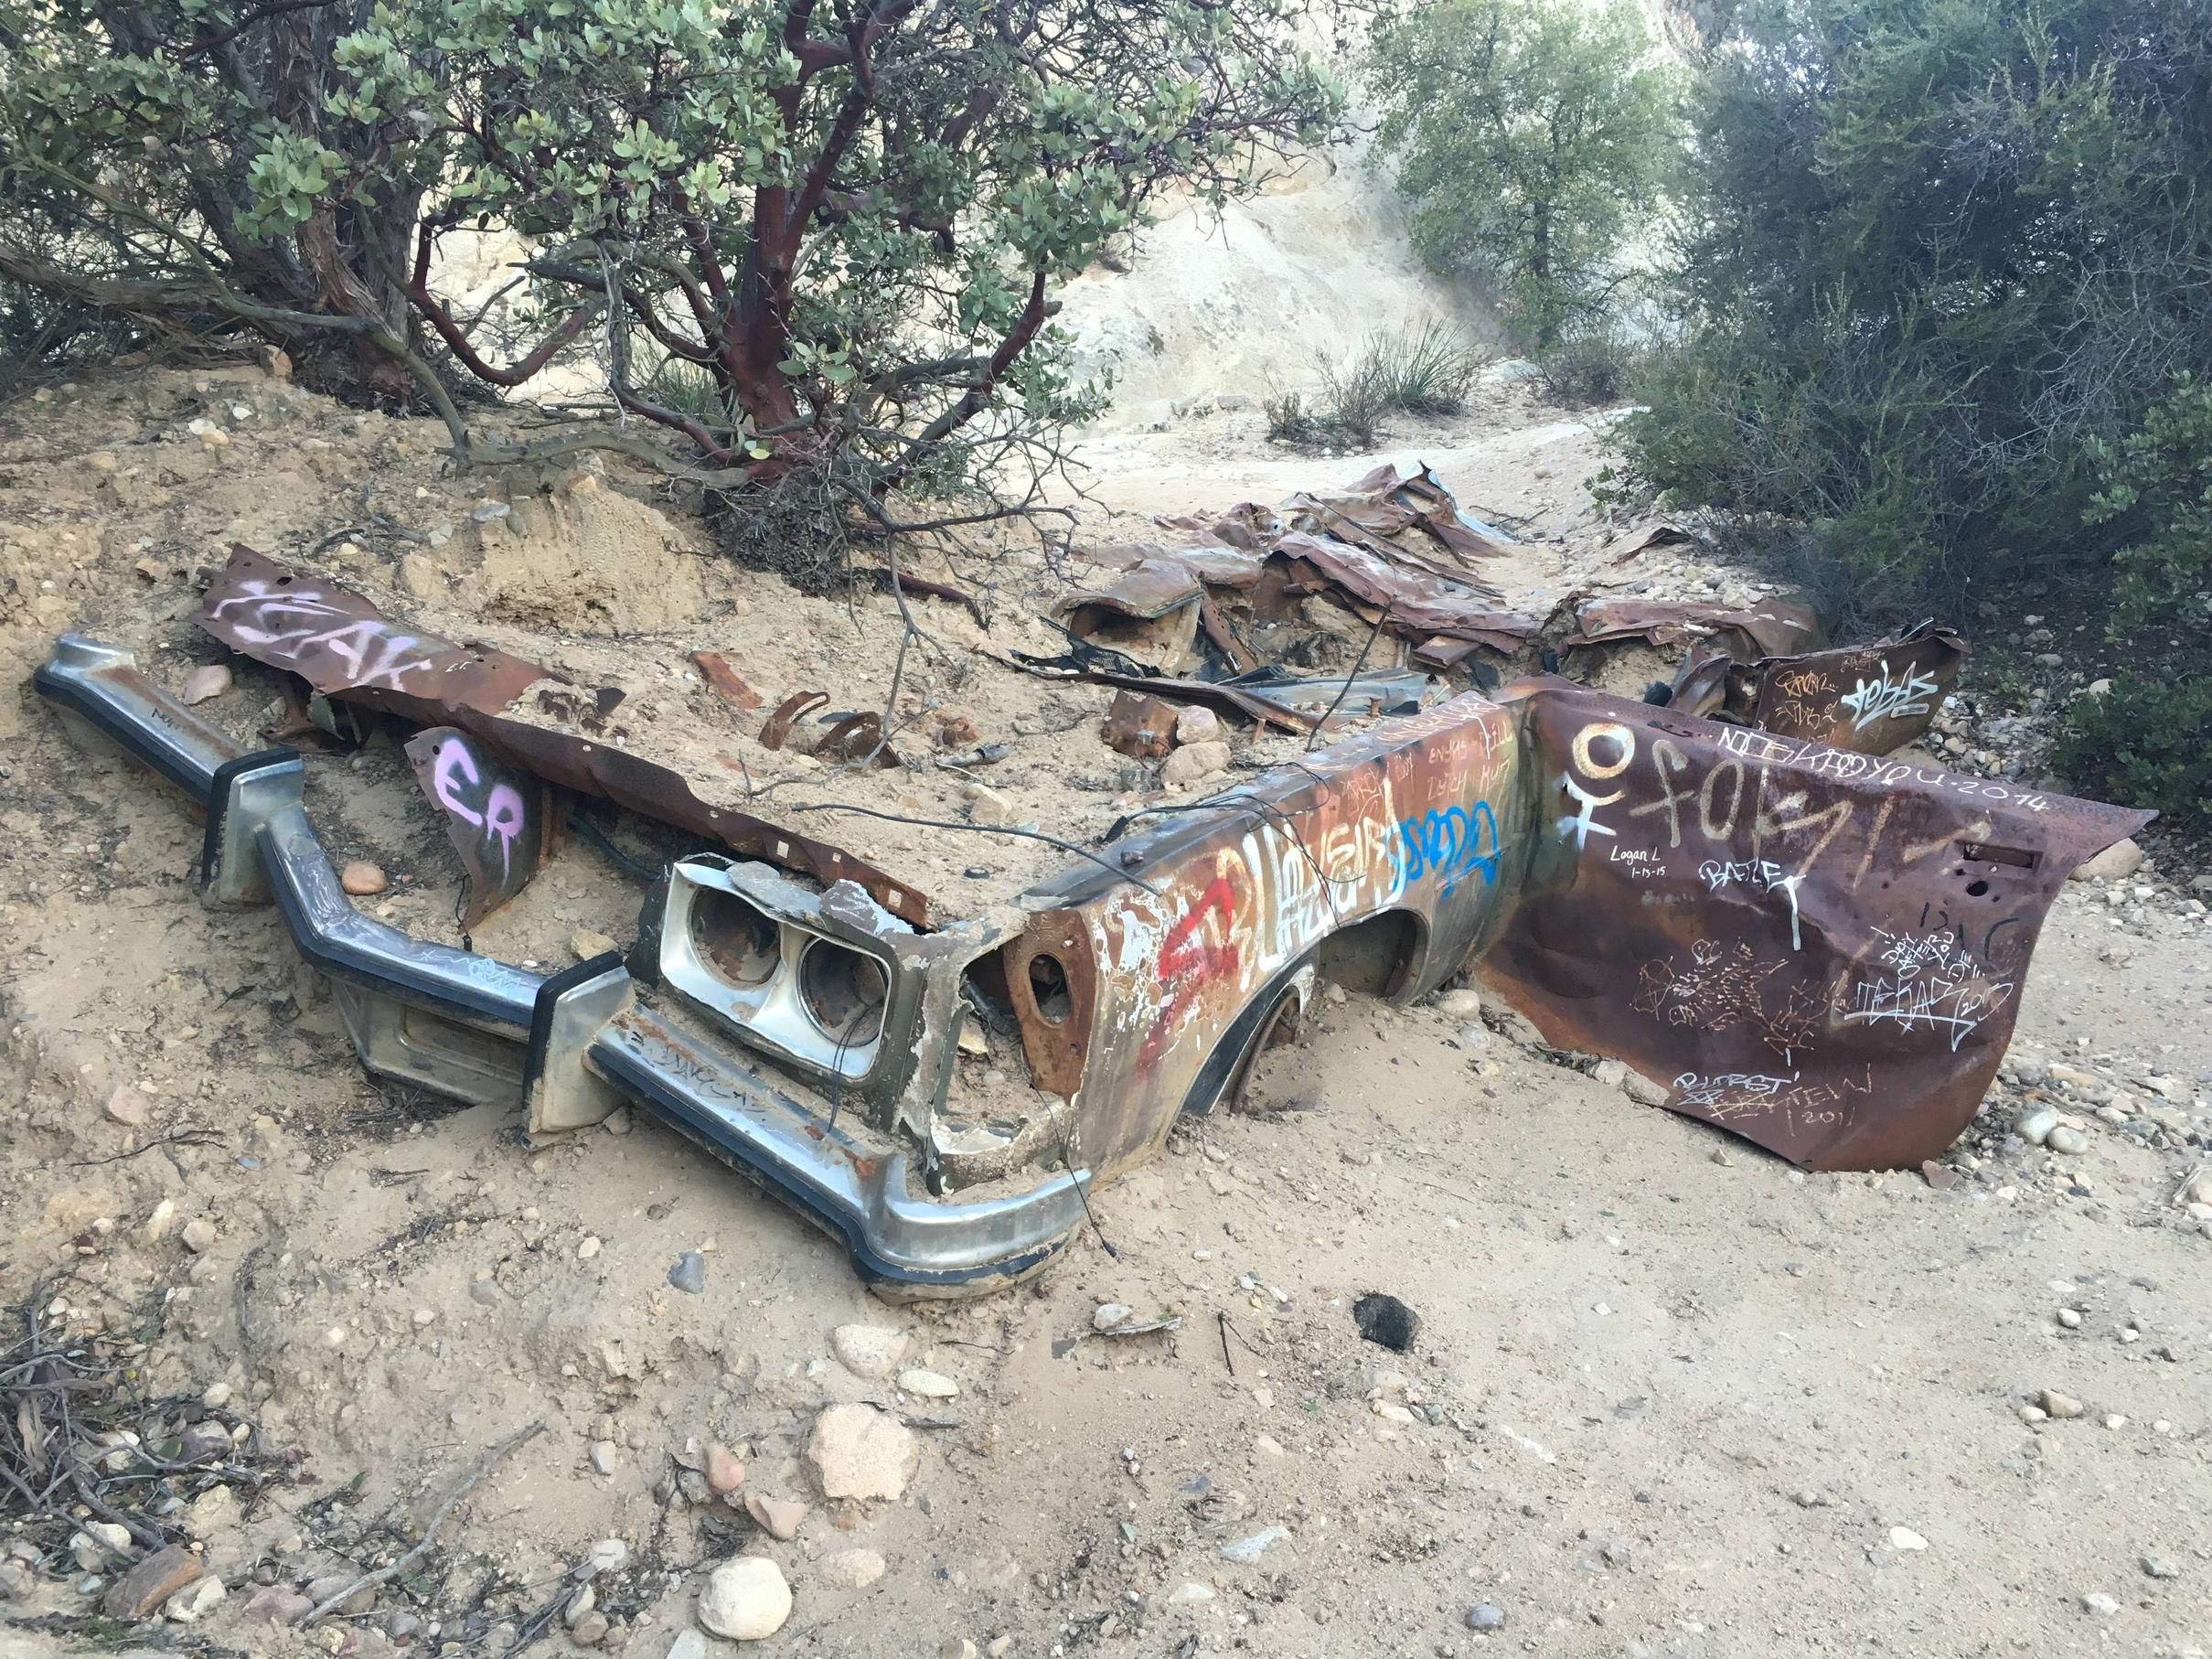 Old Car Found at the Morrison Caves  Malibu CA [4032x3024